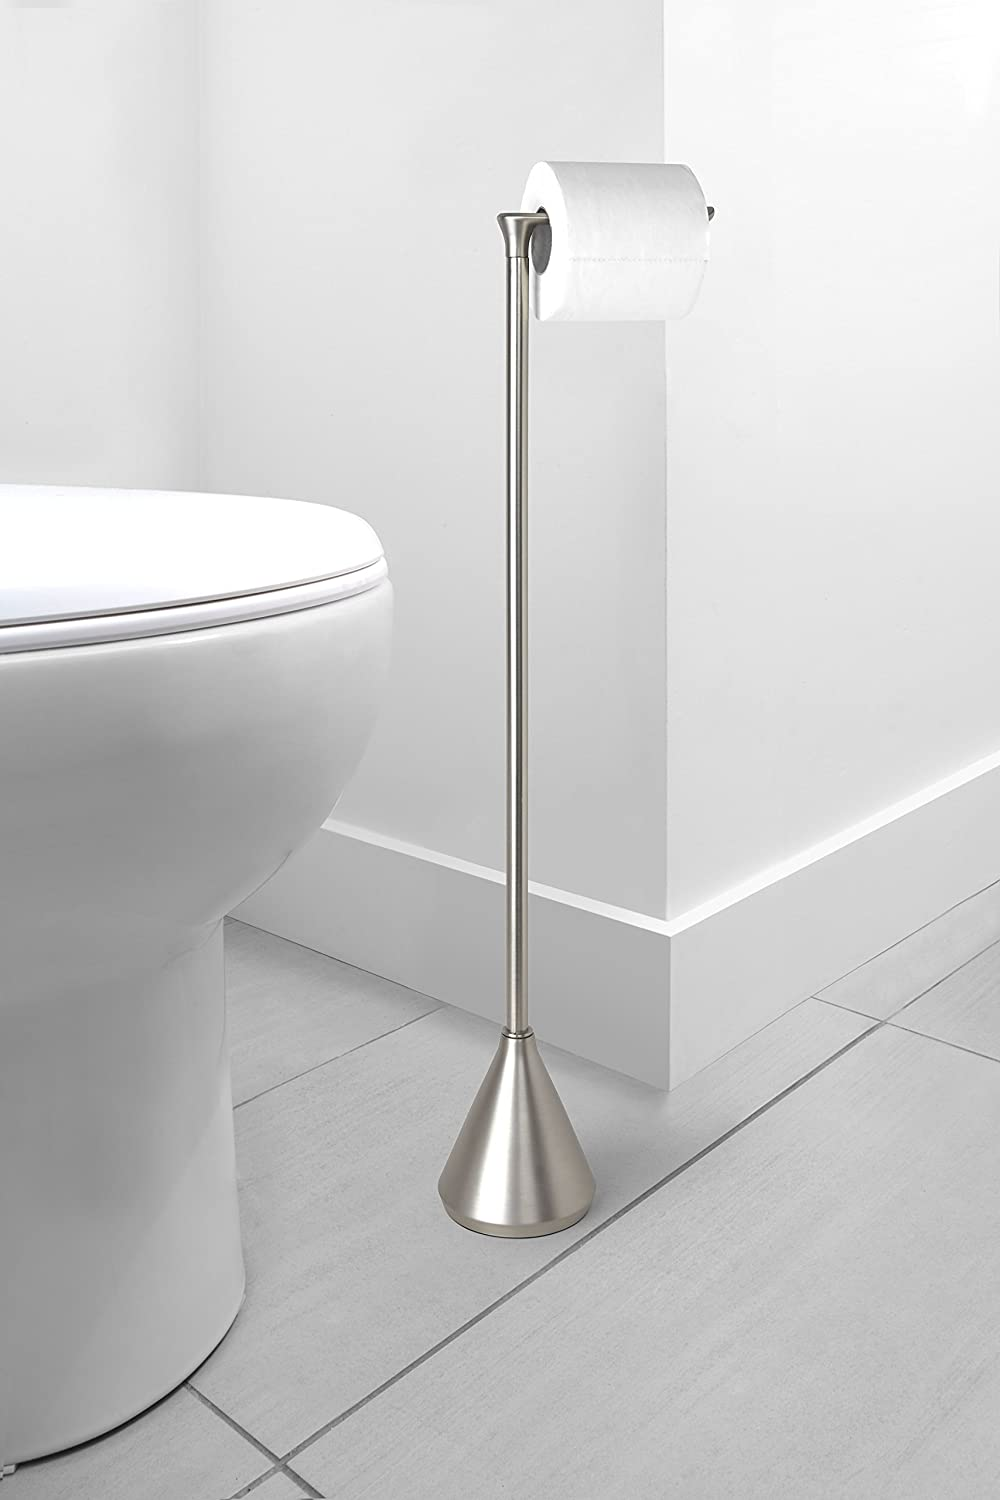 Tp Dispenser Brushed Nickel Umbra Pinnacle Toilet Paper Holder and Stand